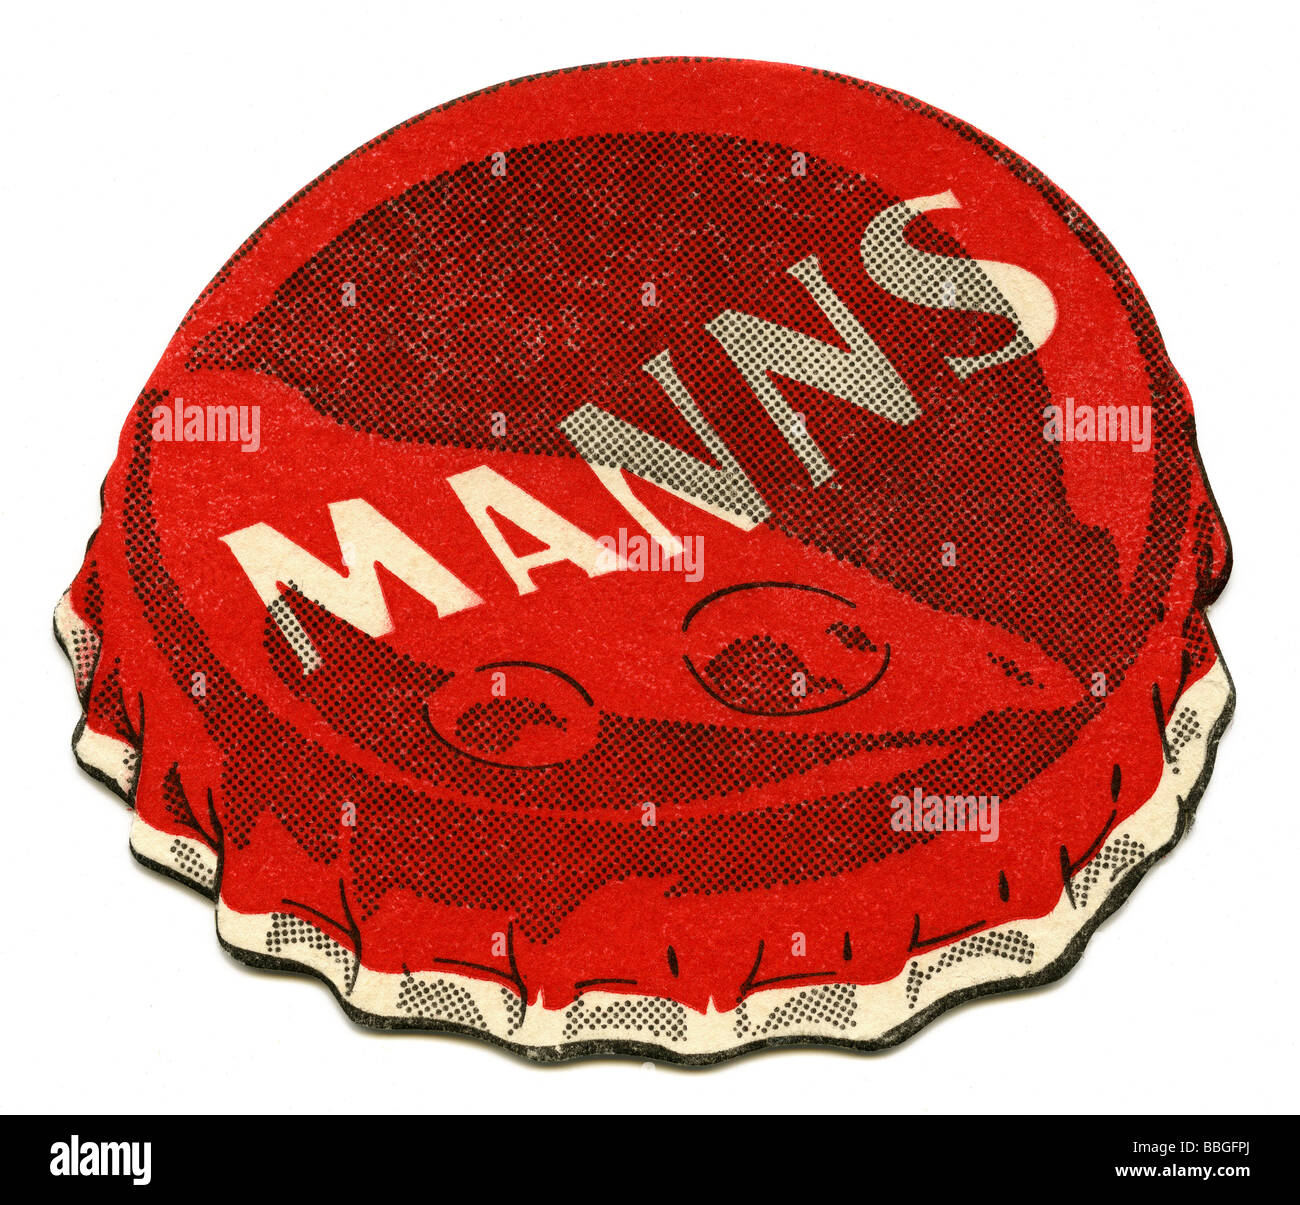 Old beermat from Manns, London - Stock Image